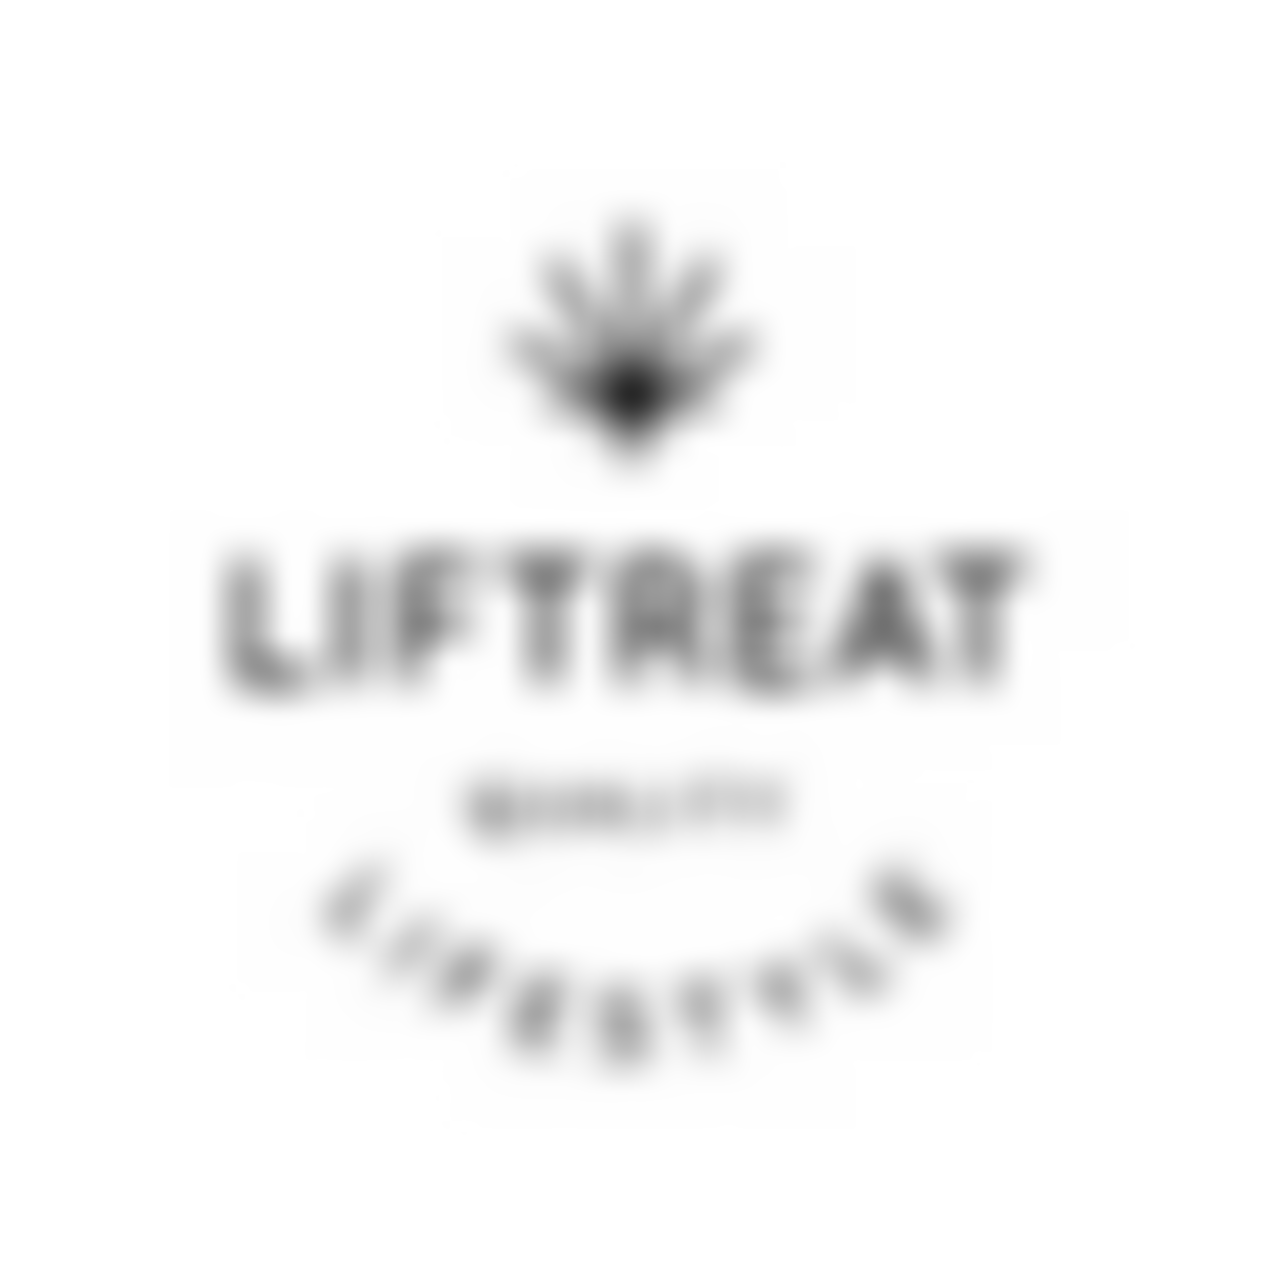 LifTreat banner